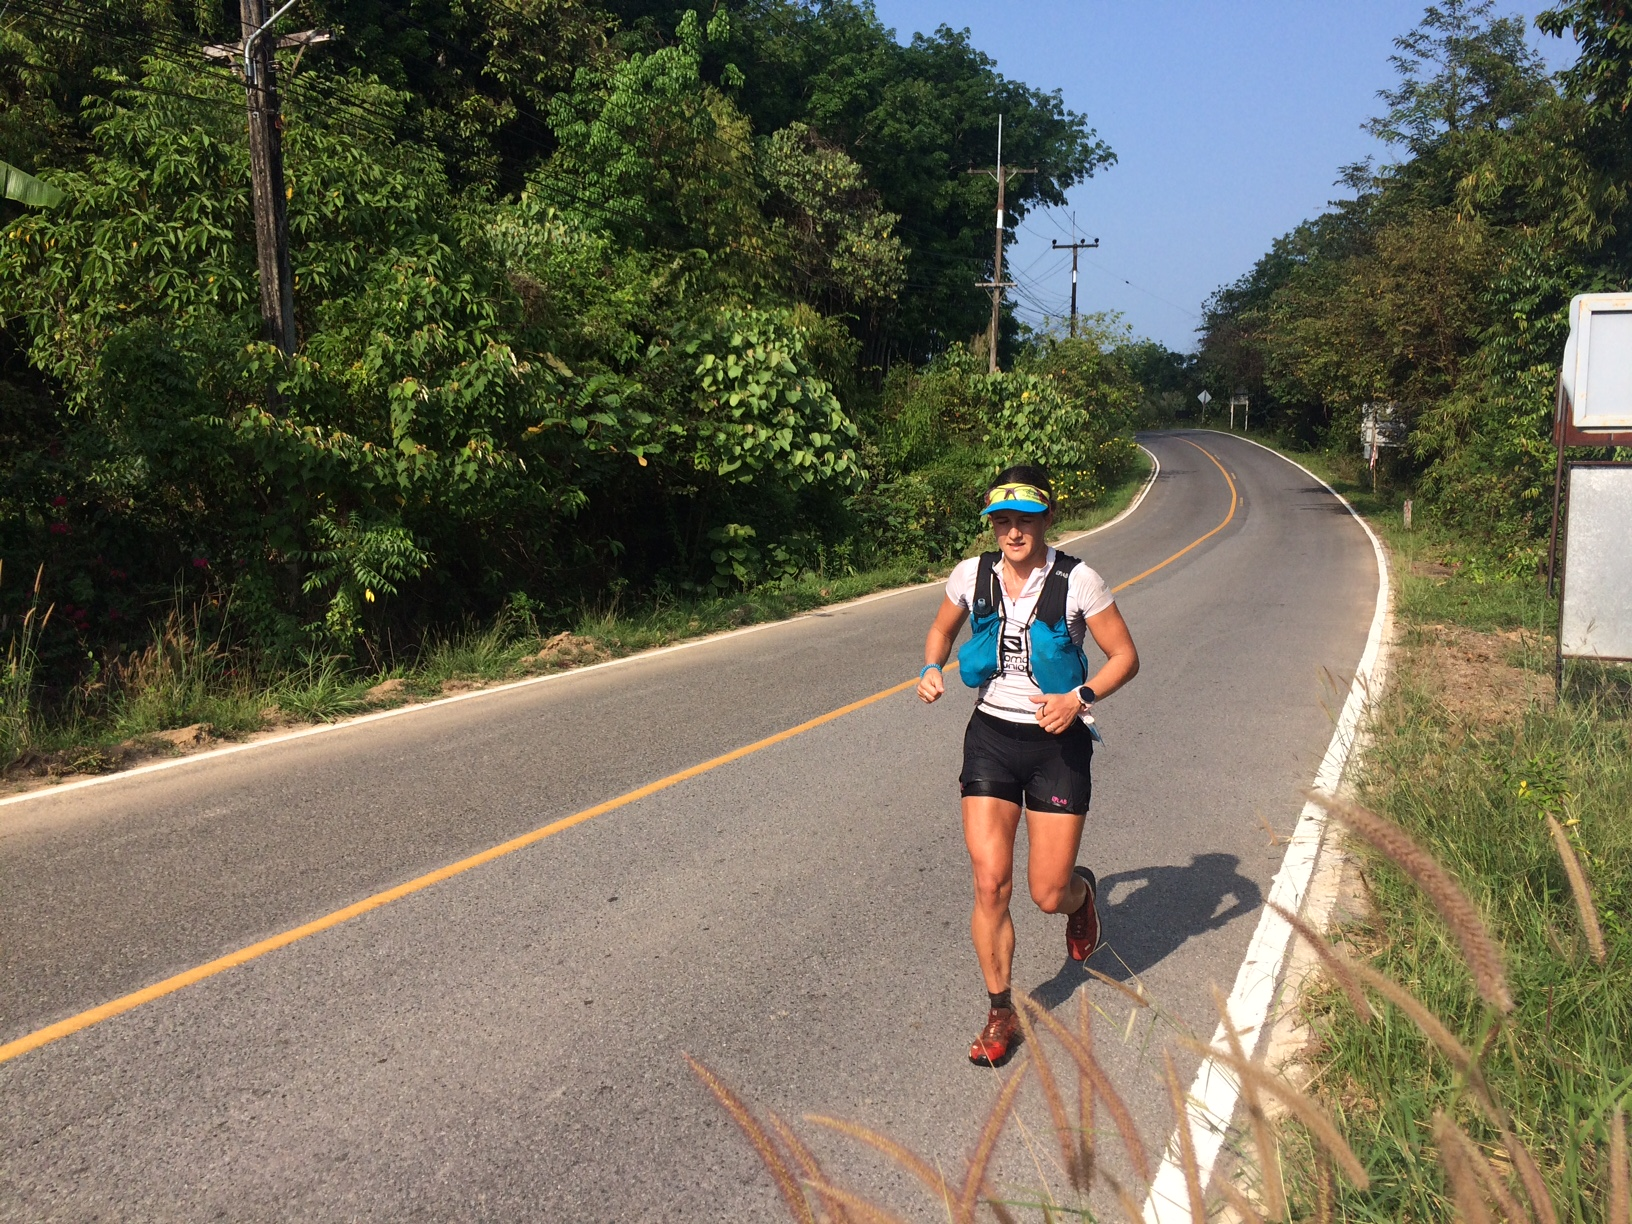 France's Elisabeth Legros led the women's race until km 75 when blisters and an insect forced her to DNF